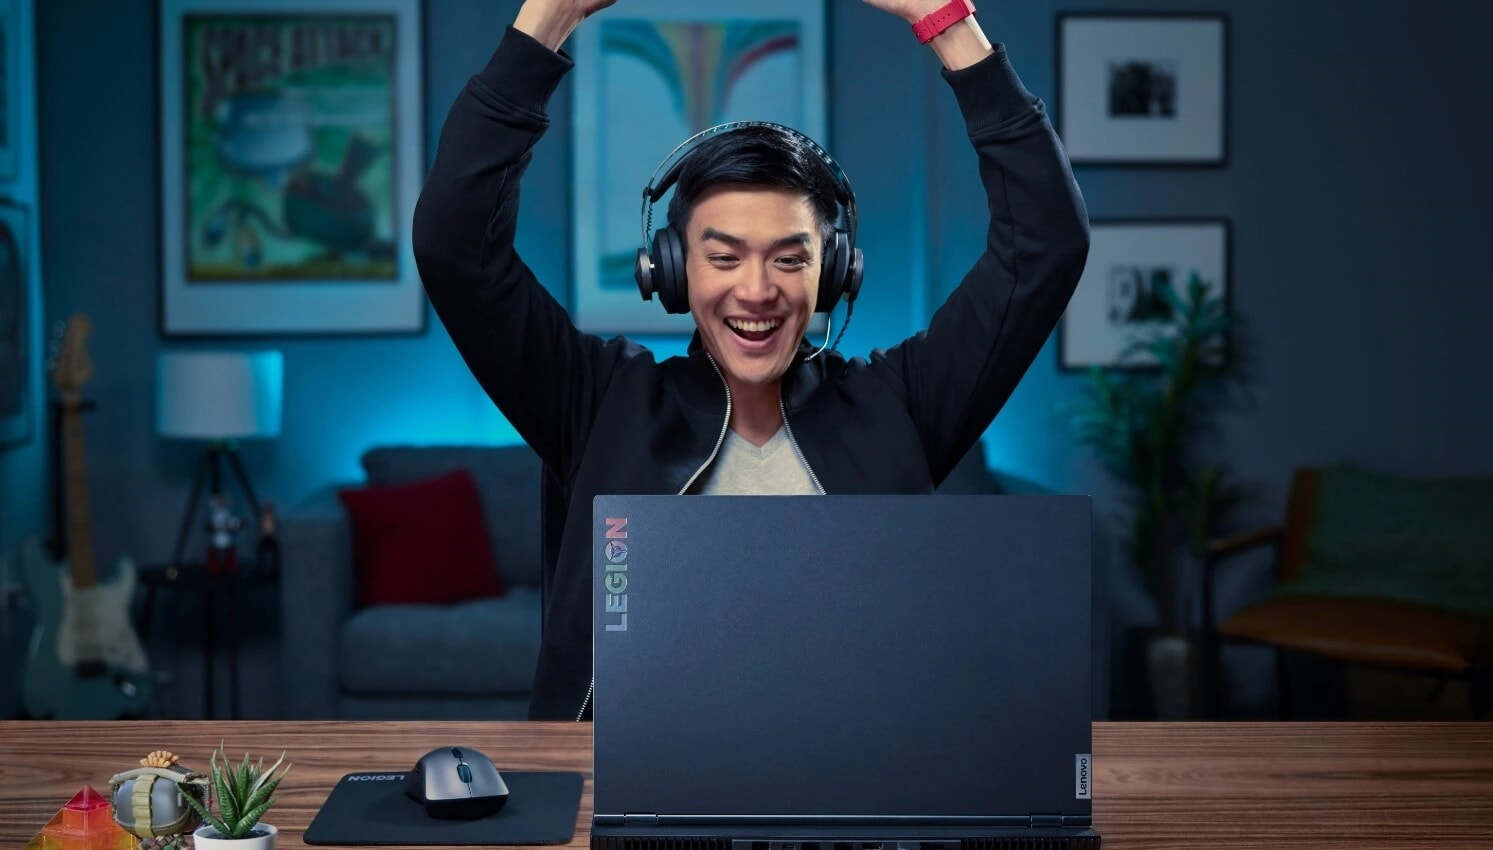 Gammer with headphones celebrate his win in front of a Laptop